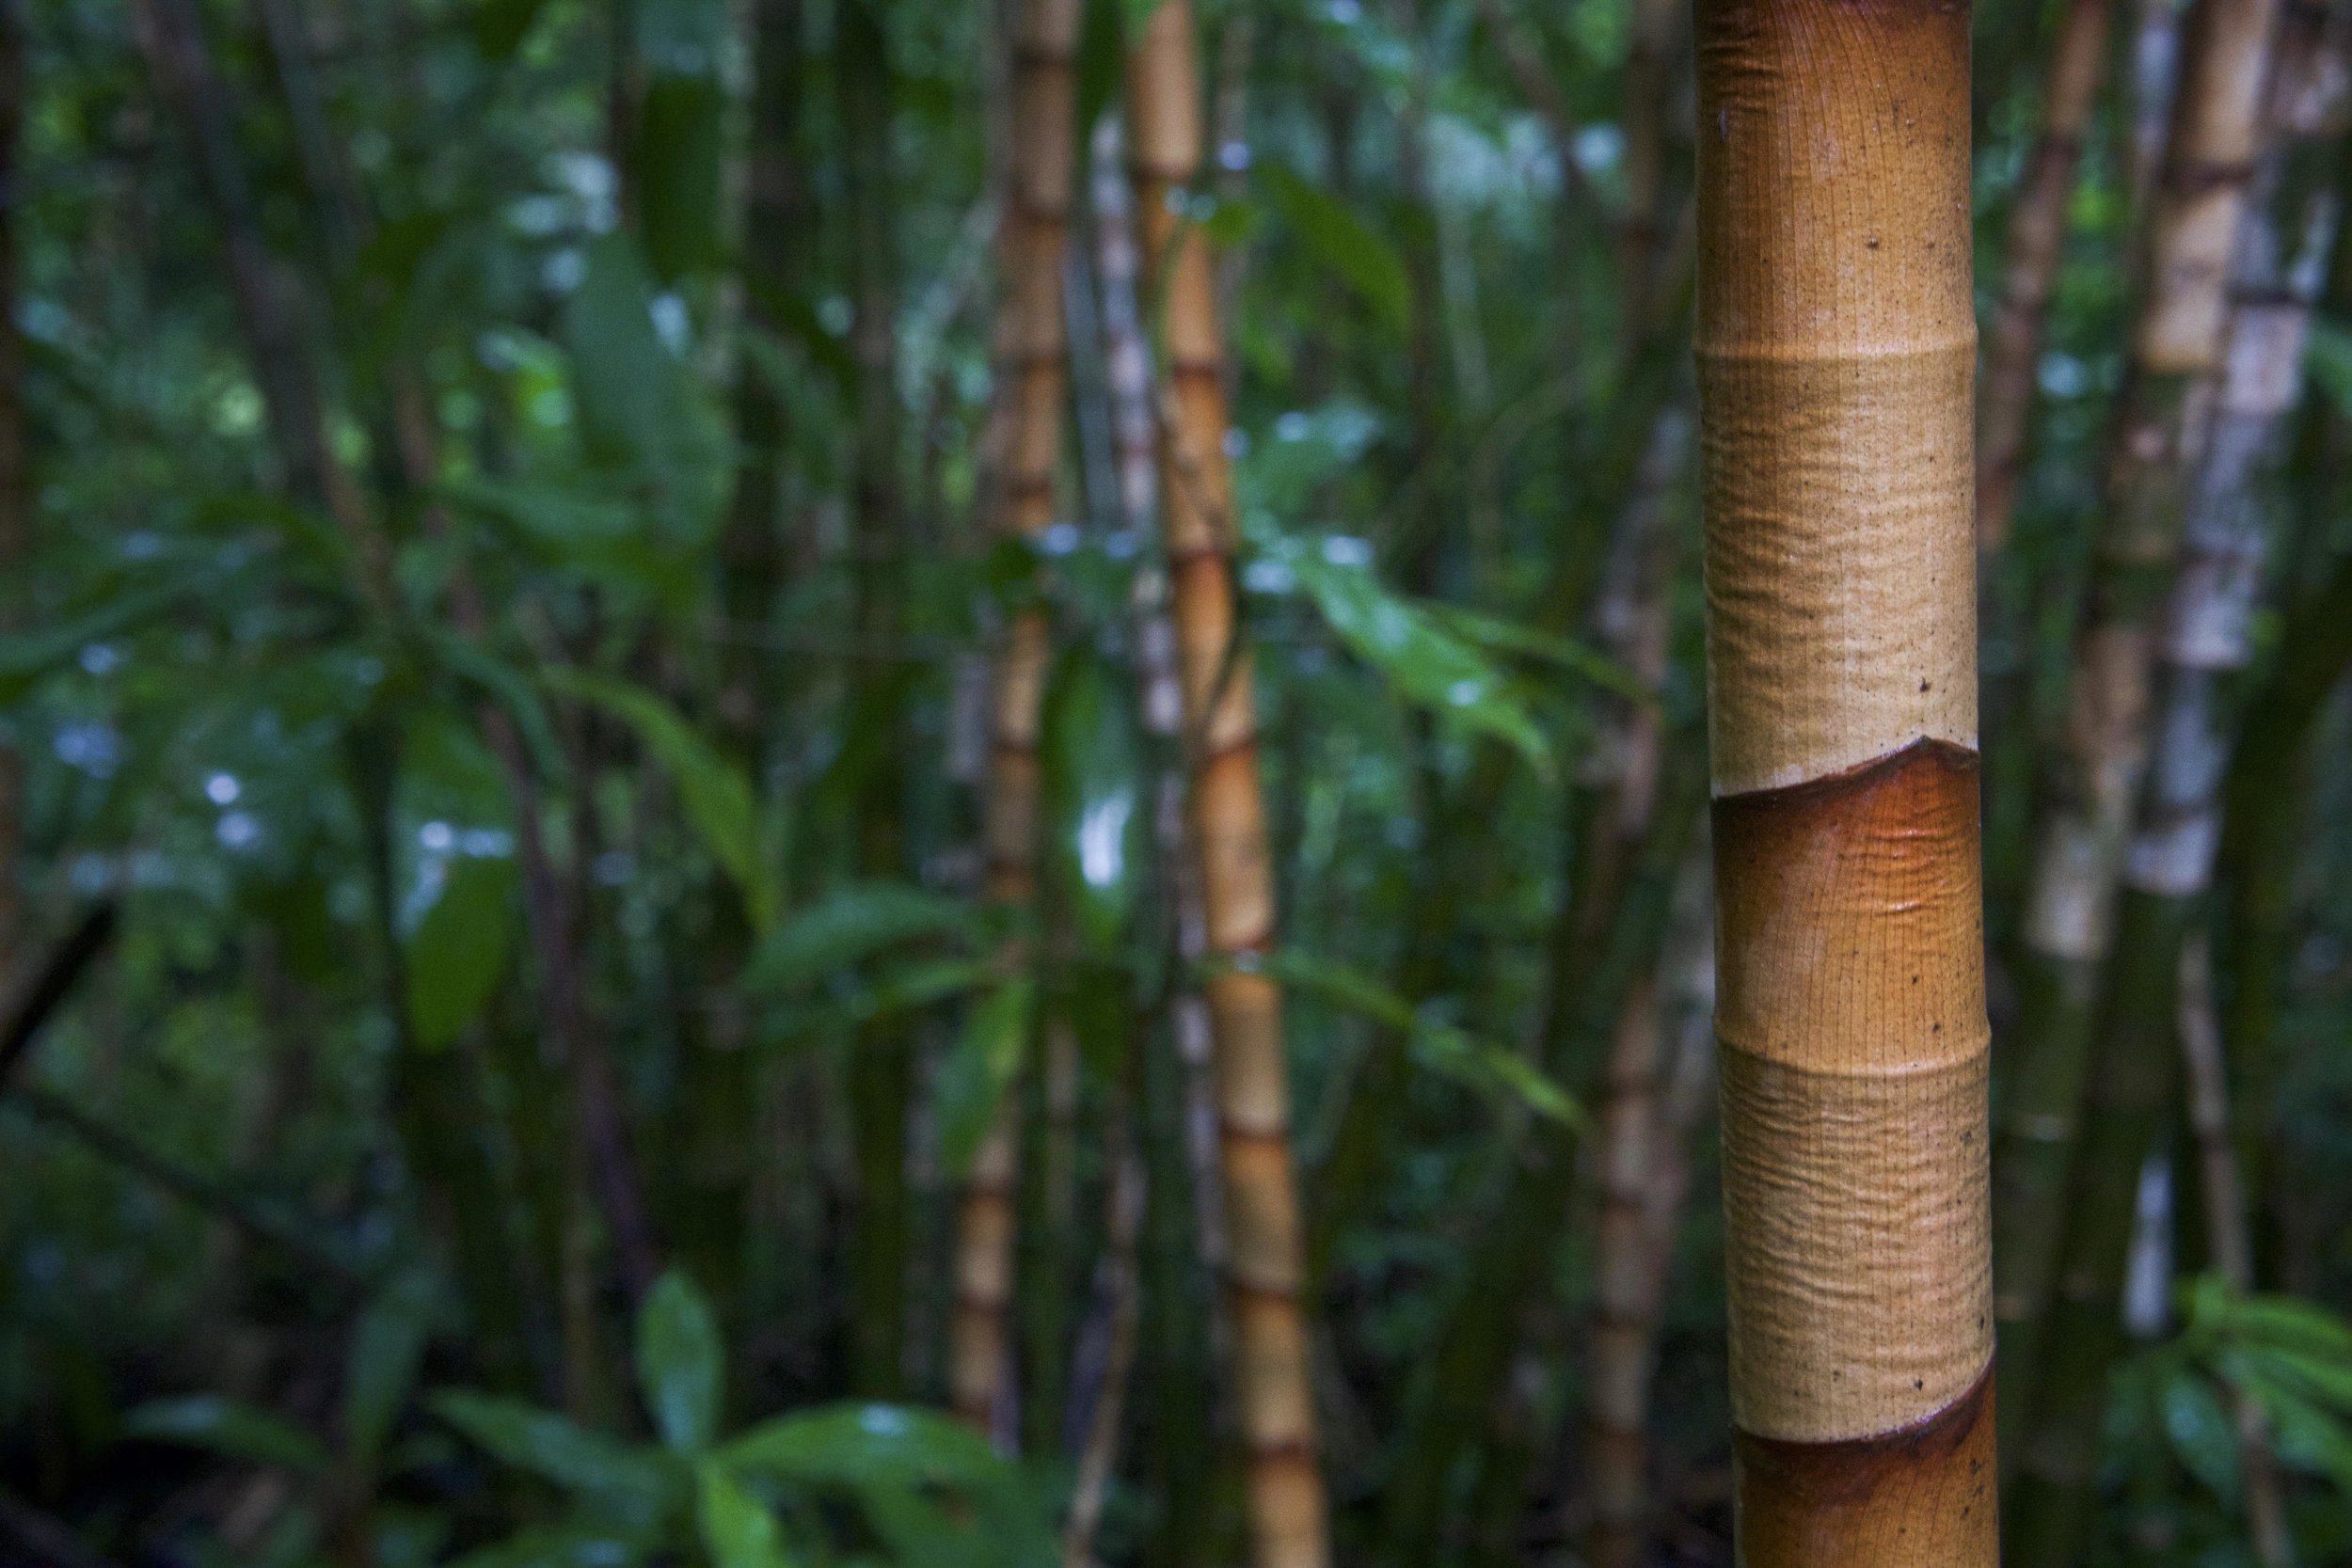 Bamboo forests offer great color contrasts in the lush hills above Honolulu.